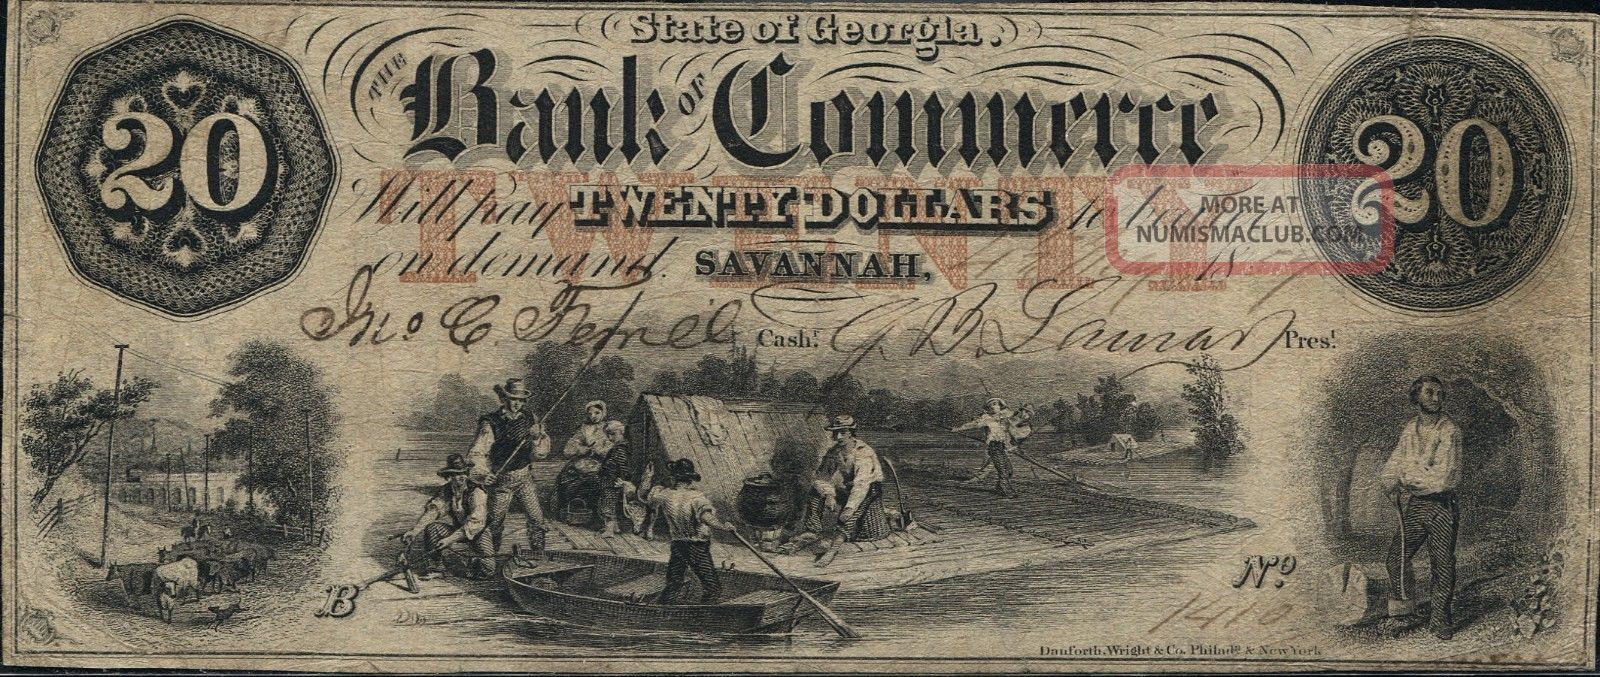 State Of Georgia Bank Of Commerce 20 Dollars Savannah 1857 Xf Paper Money: US photo